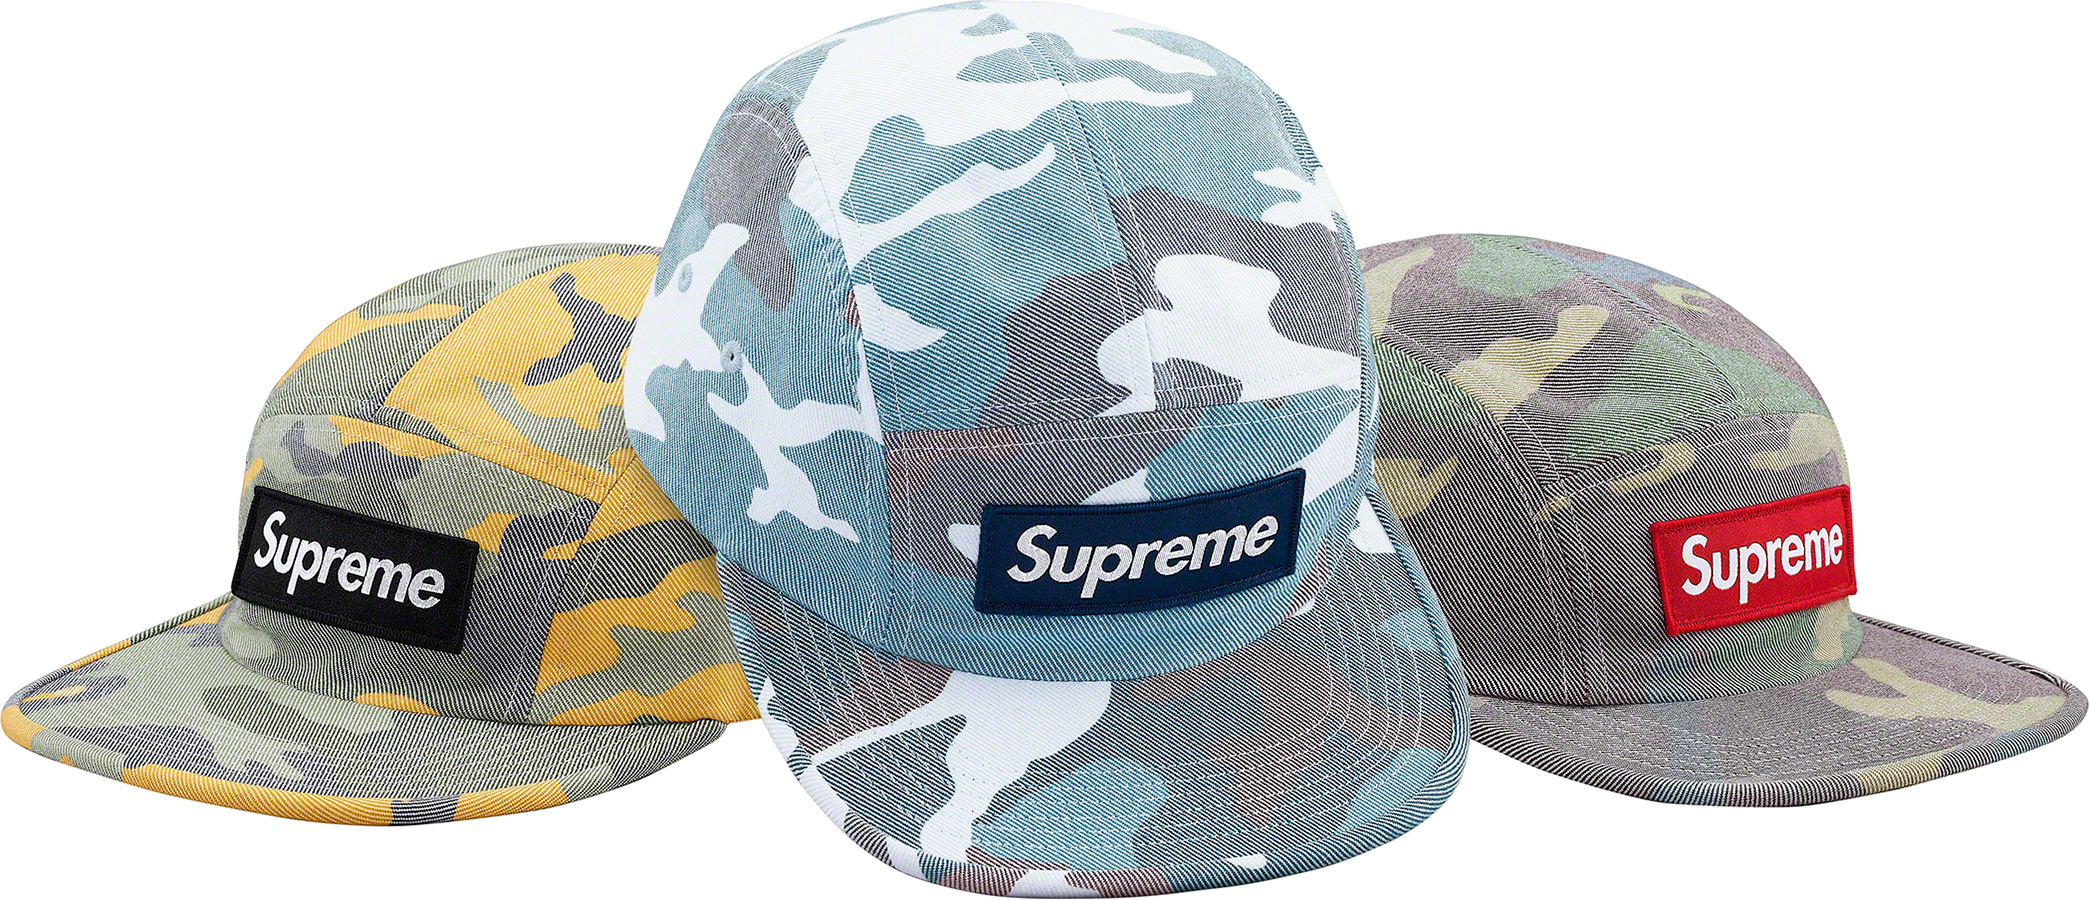 supreme-19ss-spring-summer-washed-out-camo-camp-cap